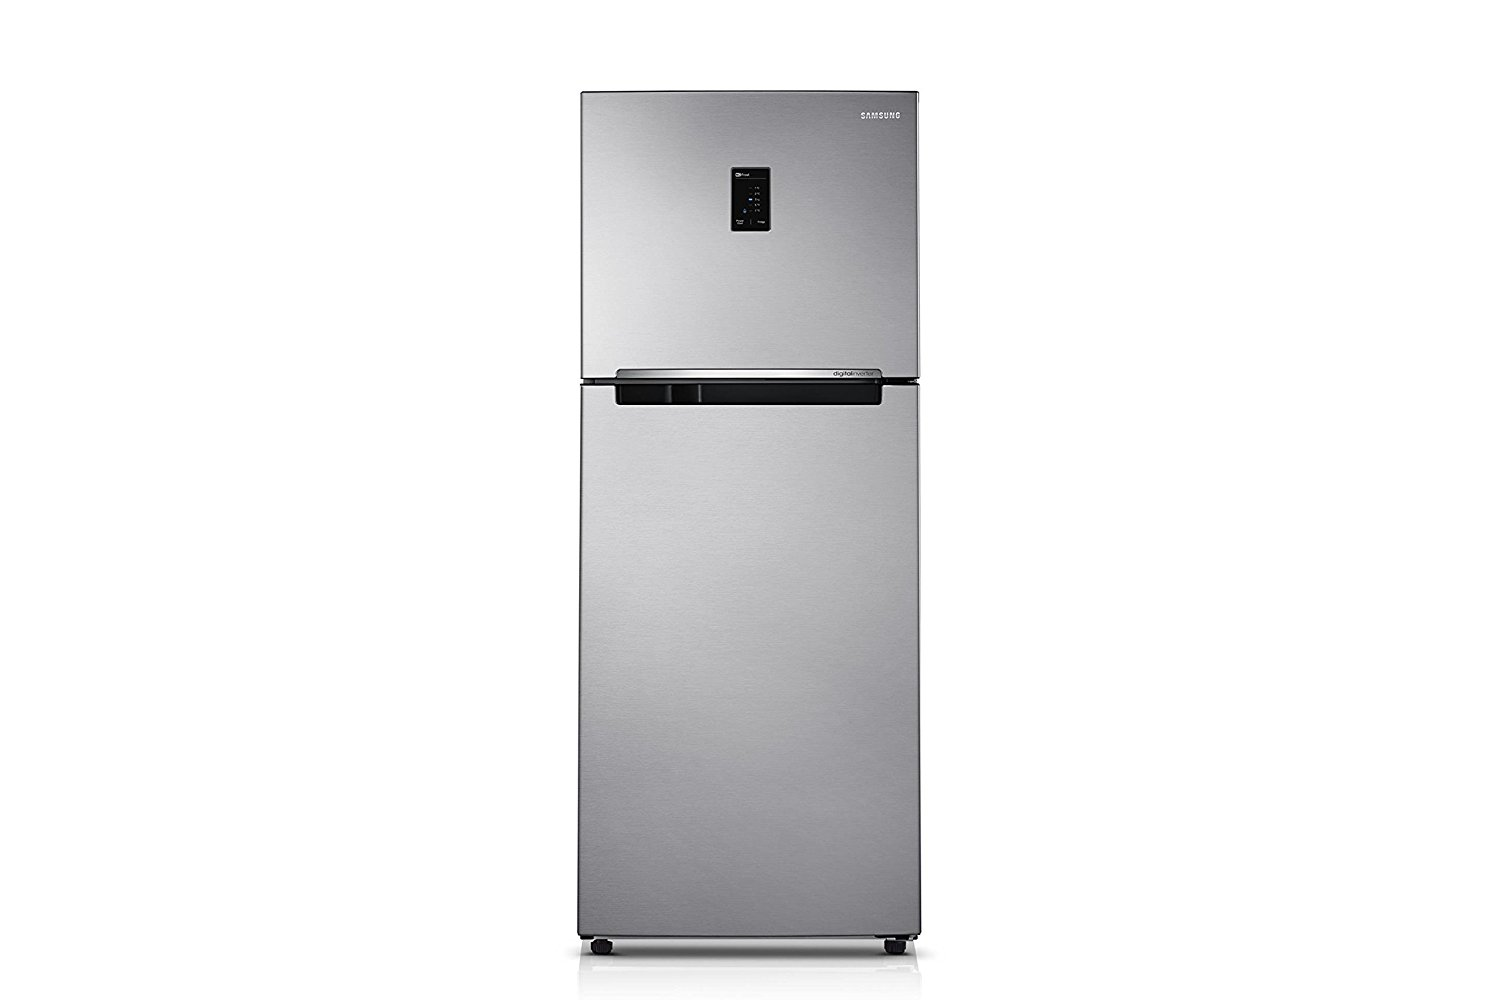 Samsung 363 litres Frost Free Smart Refrigerator RT39HDAGES Image